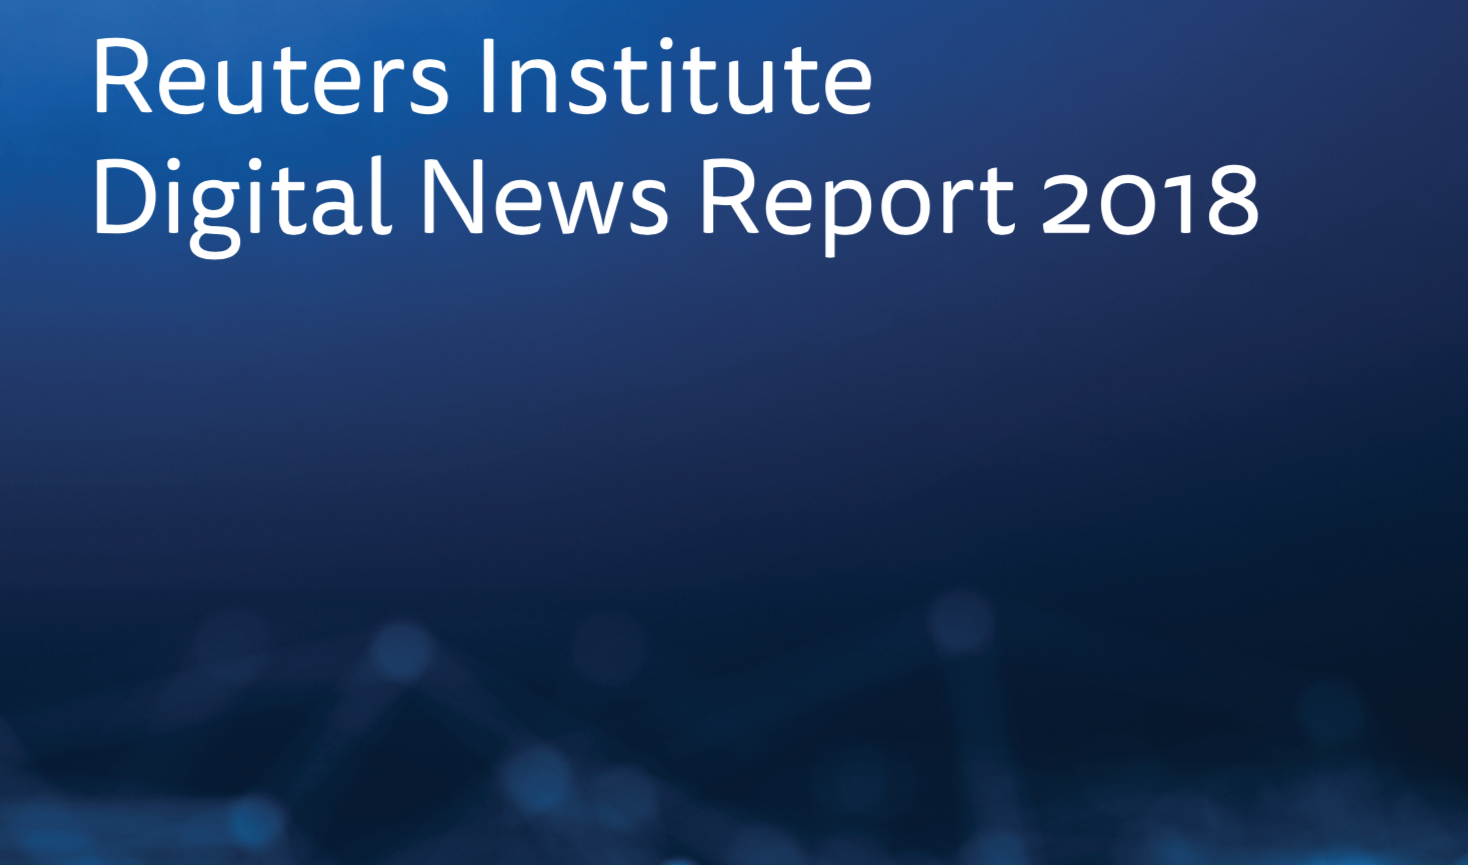 Digital News Report 2018: traffic from — and trust in — social media on the decline